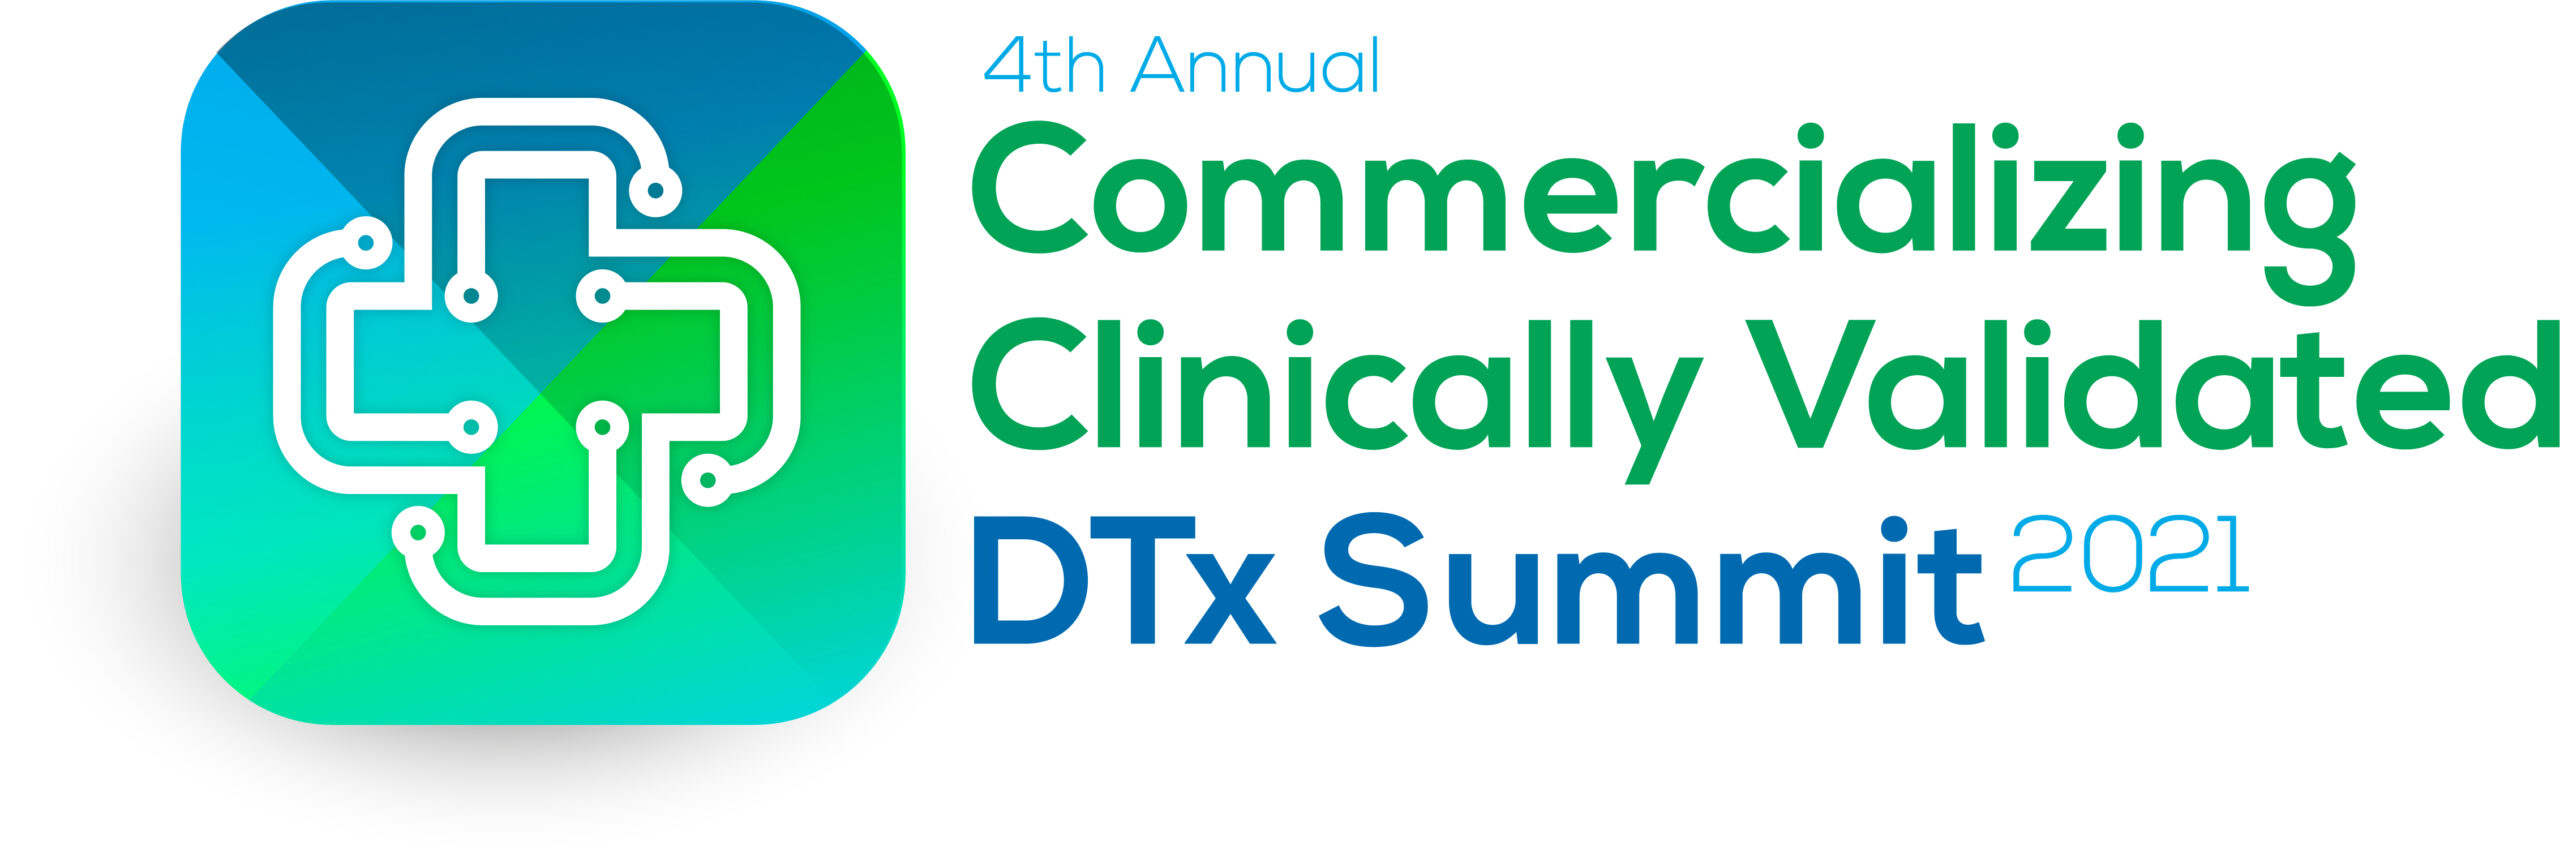 HW2107012 4th Commercializing Clinically Validated DTx Summit 2021 logo FINAL